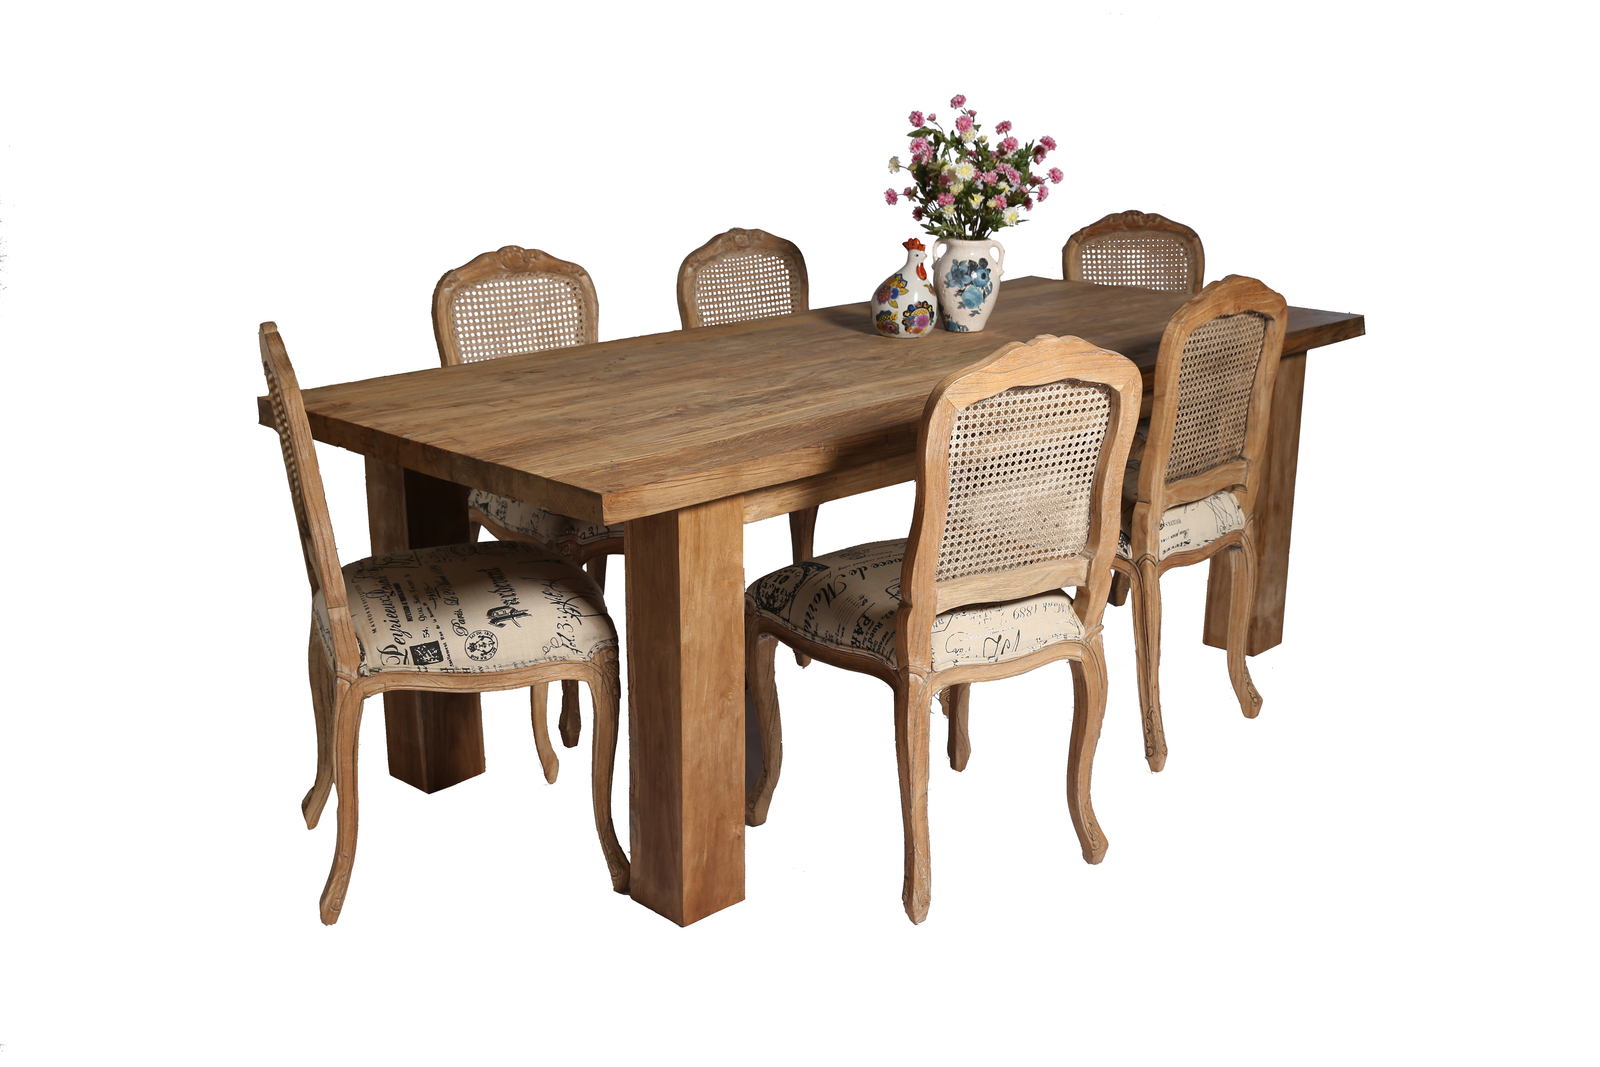 dining room furniture brisbane | Dining Room Table Contemporary Modern Wood Furniture Brisbane